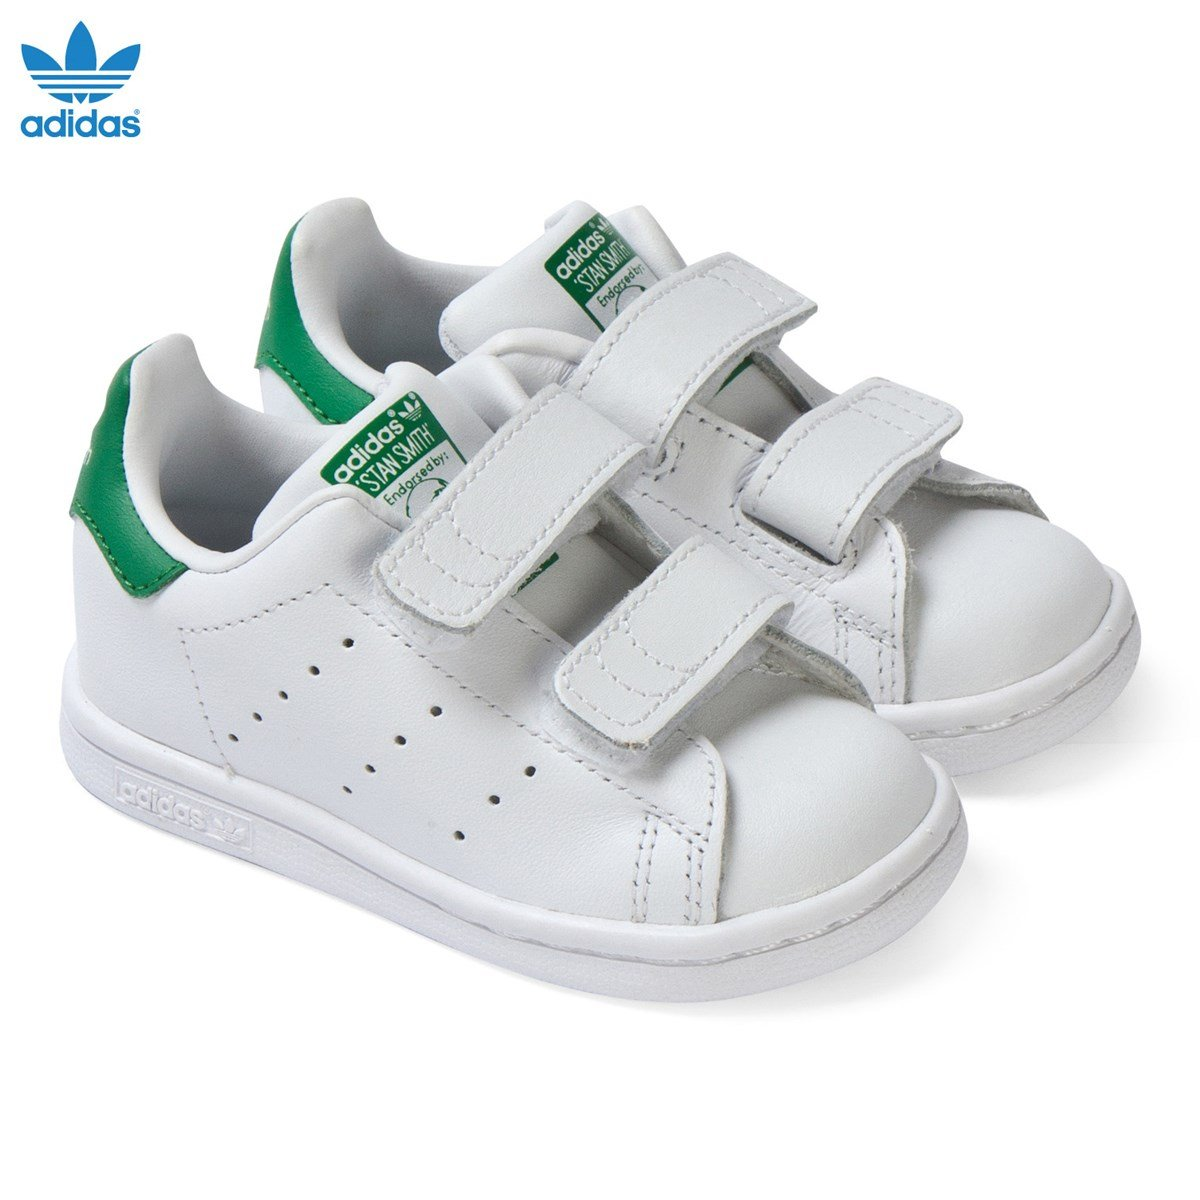 adidas originals white stan smith velcro trainers alexandalexa. Black Bedroom Furniture Sets. Home Design Ideas